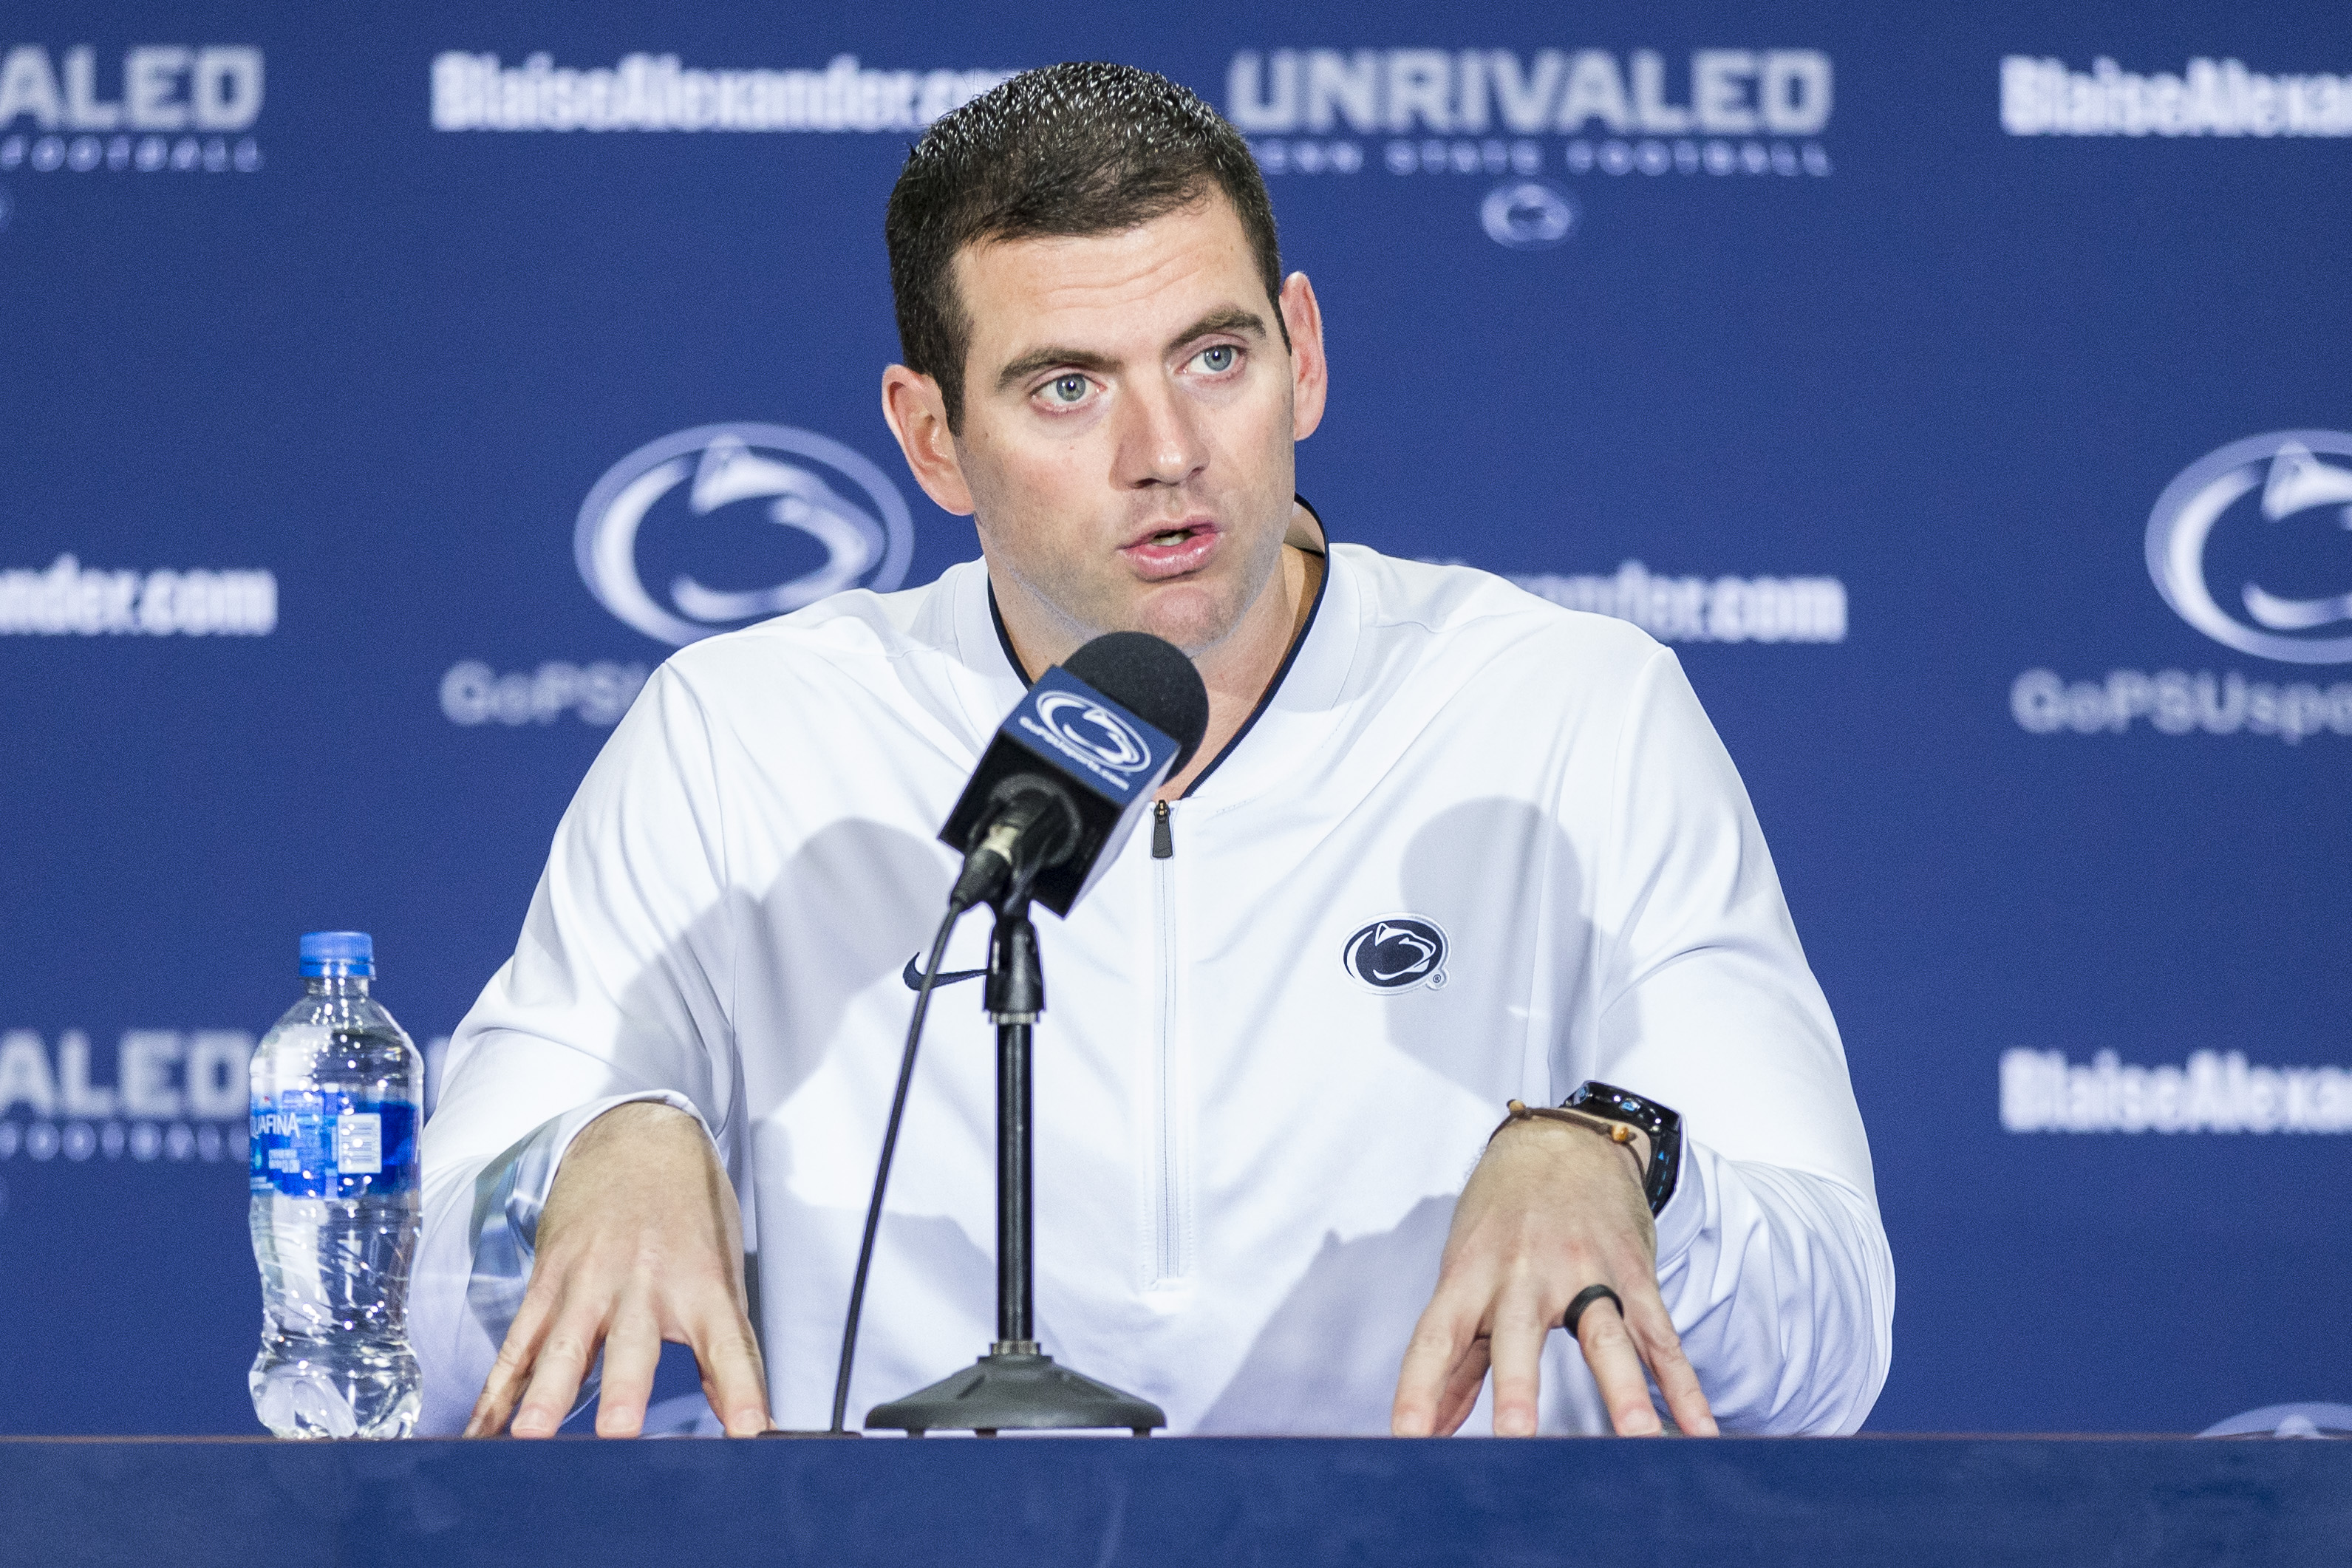 Penn State receivers coach pleads guilty to driving while intoxicated in 2017